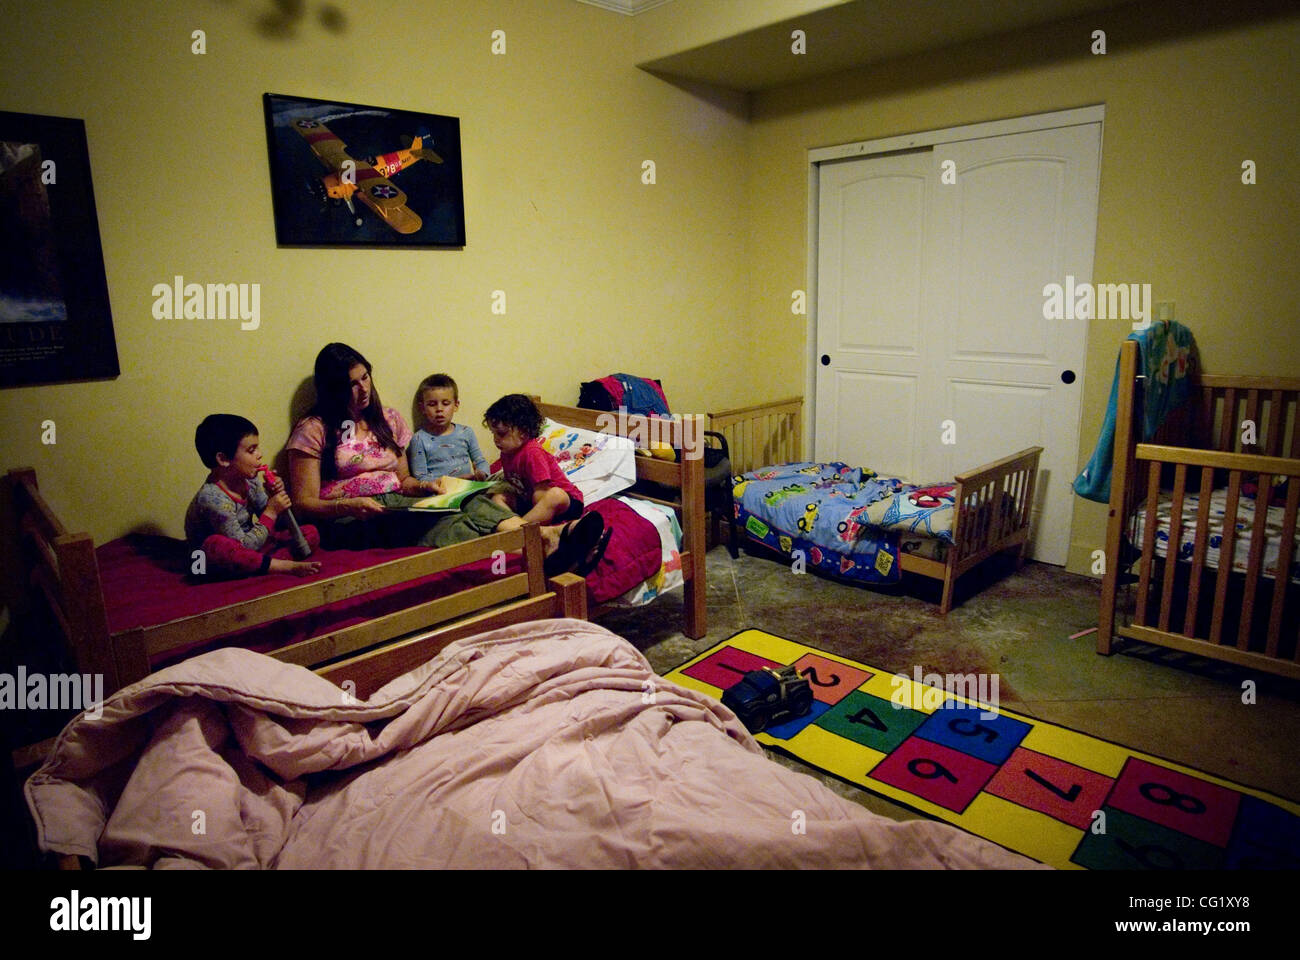 Scene N3 High Resolution Stock Photography And Images Alamy